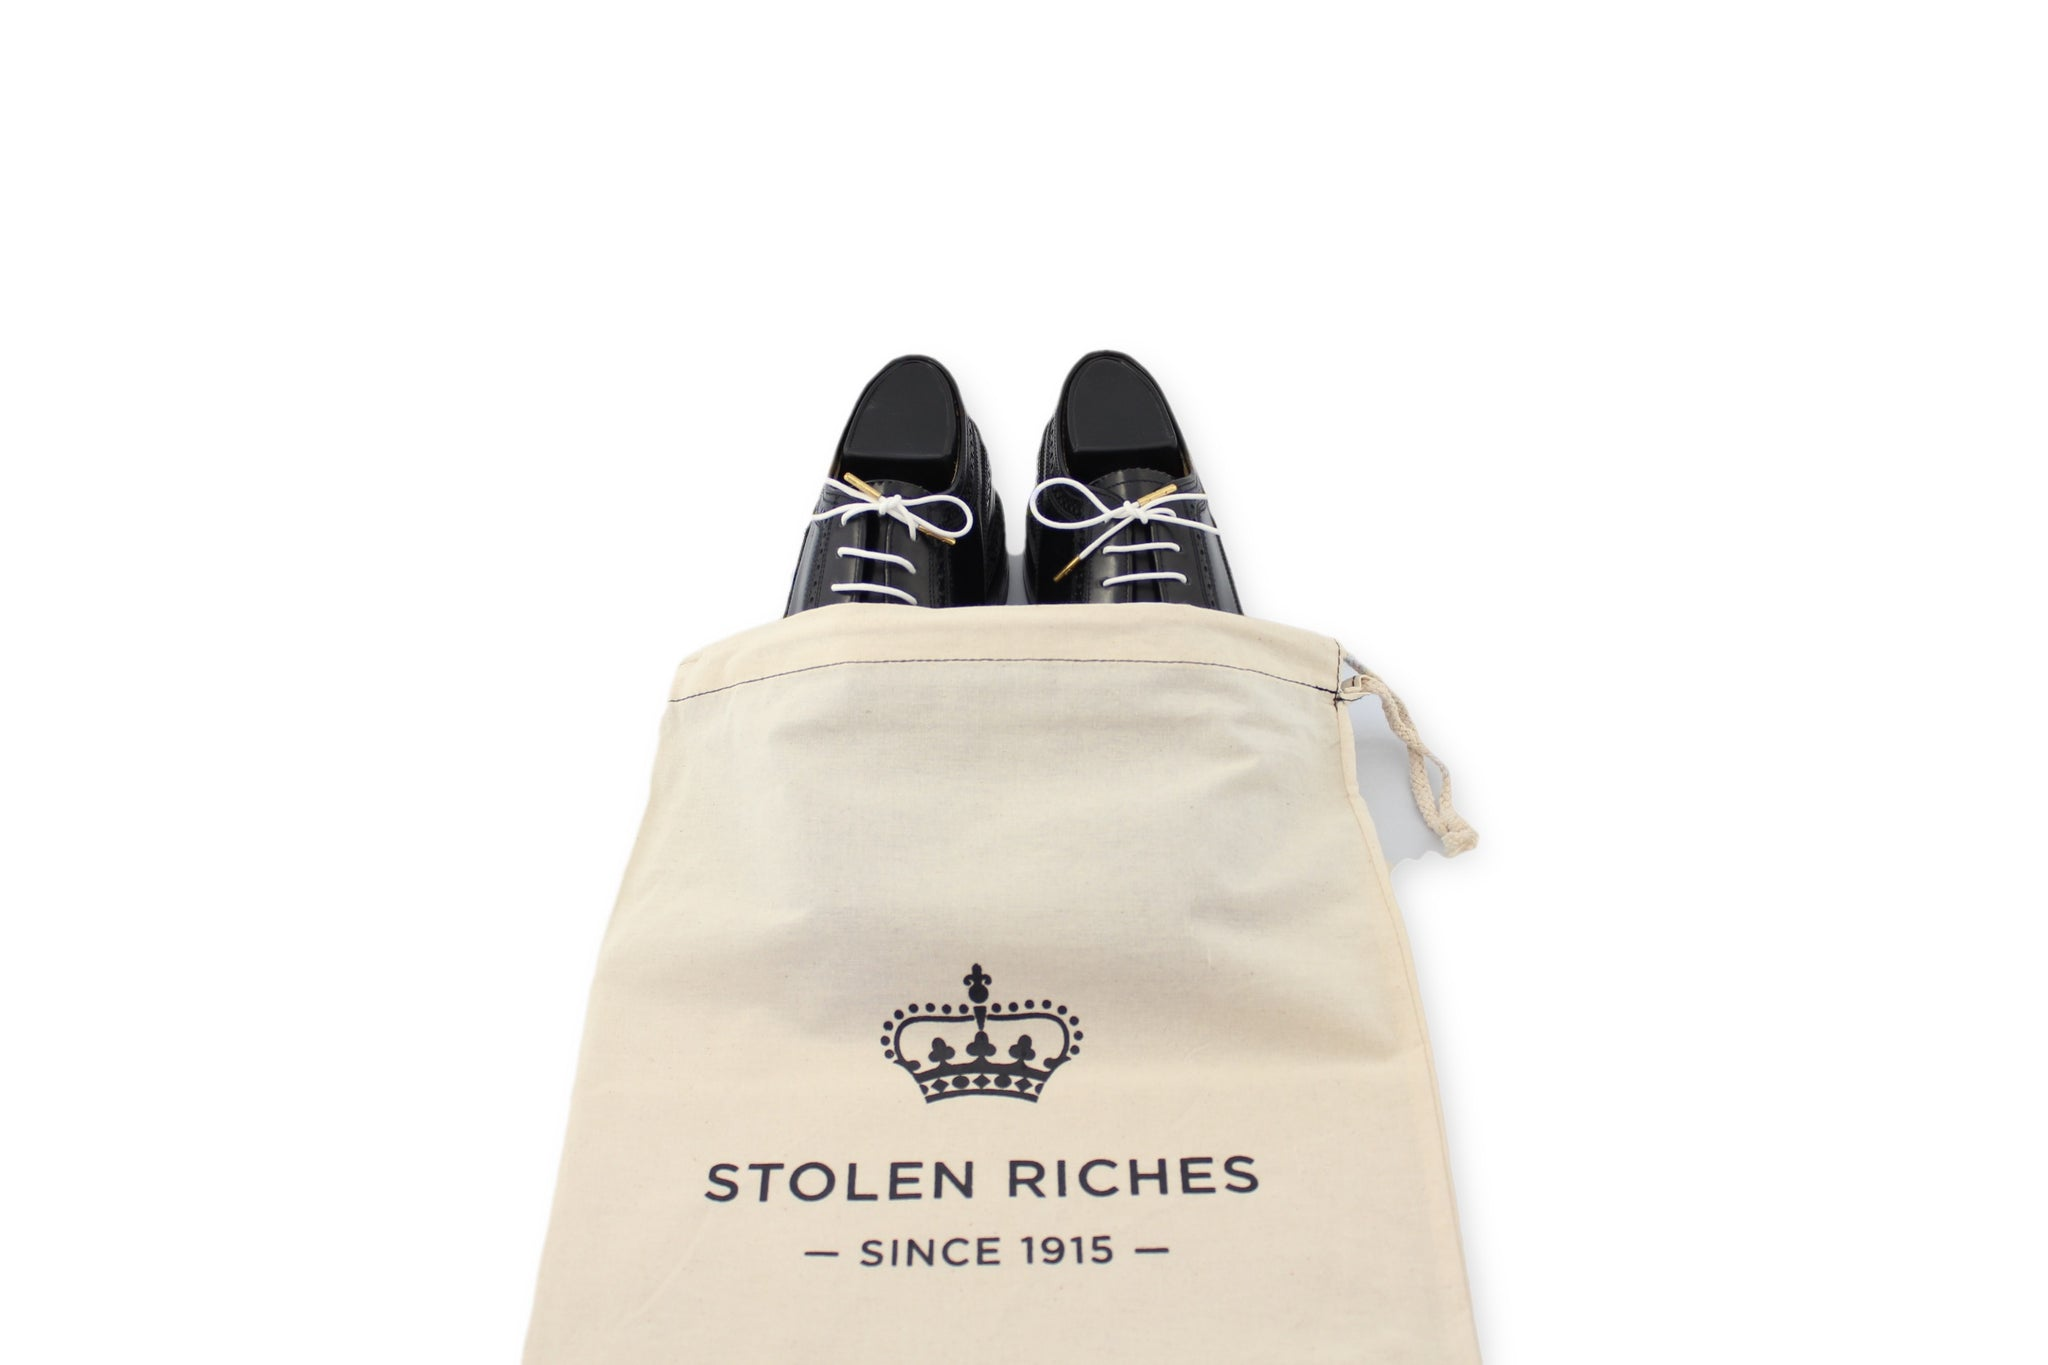 Shoe Bag - Stolen Riches / CA